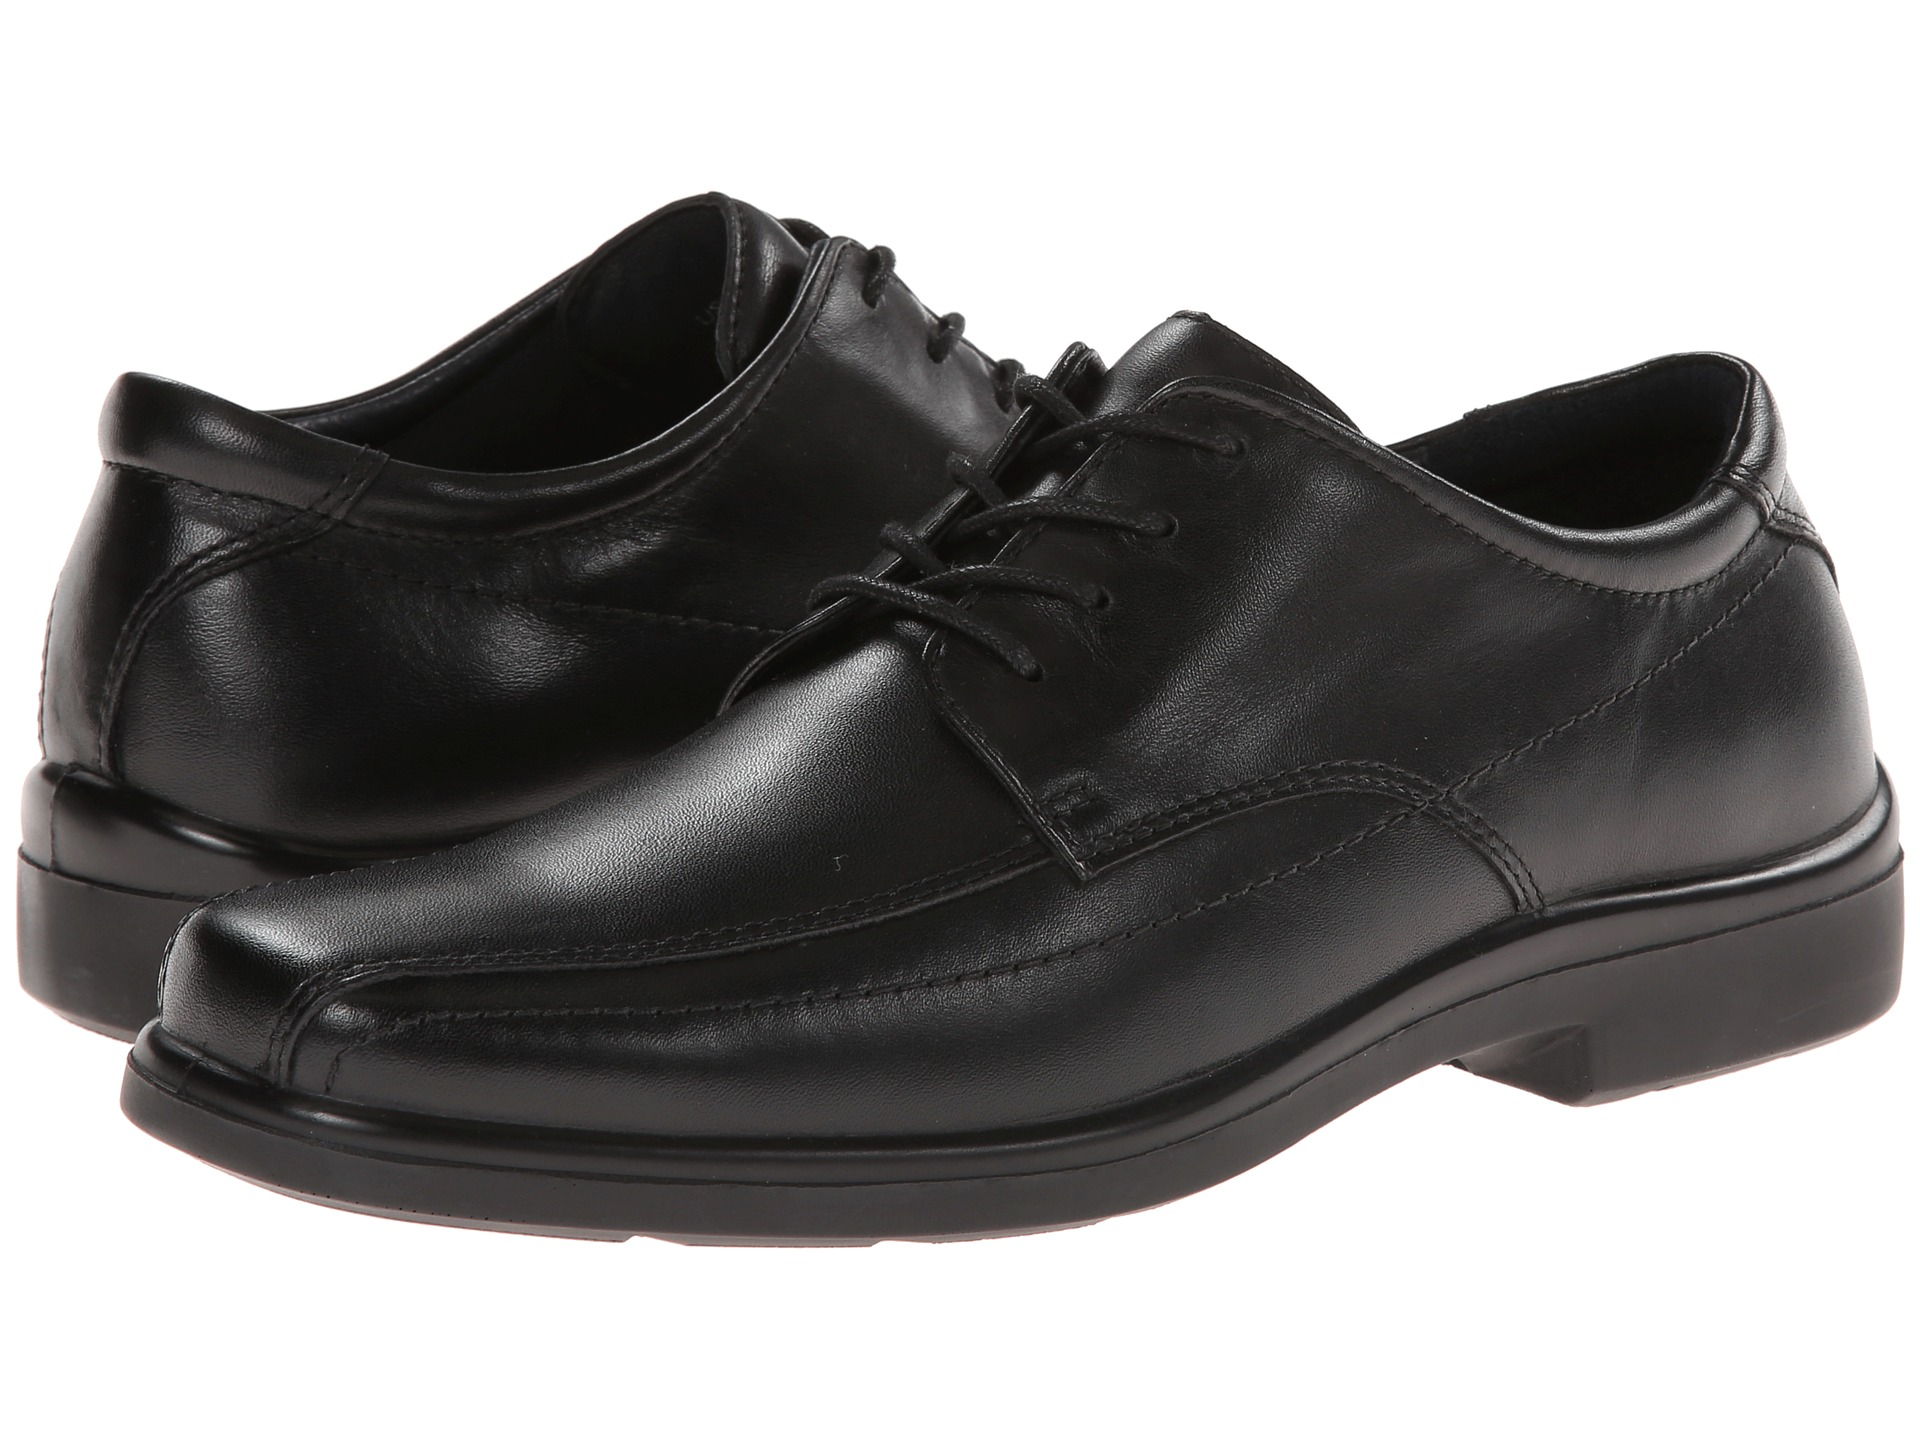 AdFind Amazing Deals on Hush Puppies Shoes derfkasiber.ga: Athletic, Boots, Sneakers, Sandals, Loafers, Flats, Pumps, Outdoor.